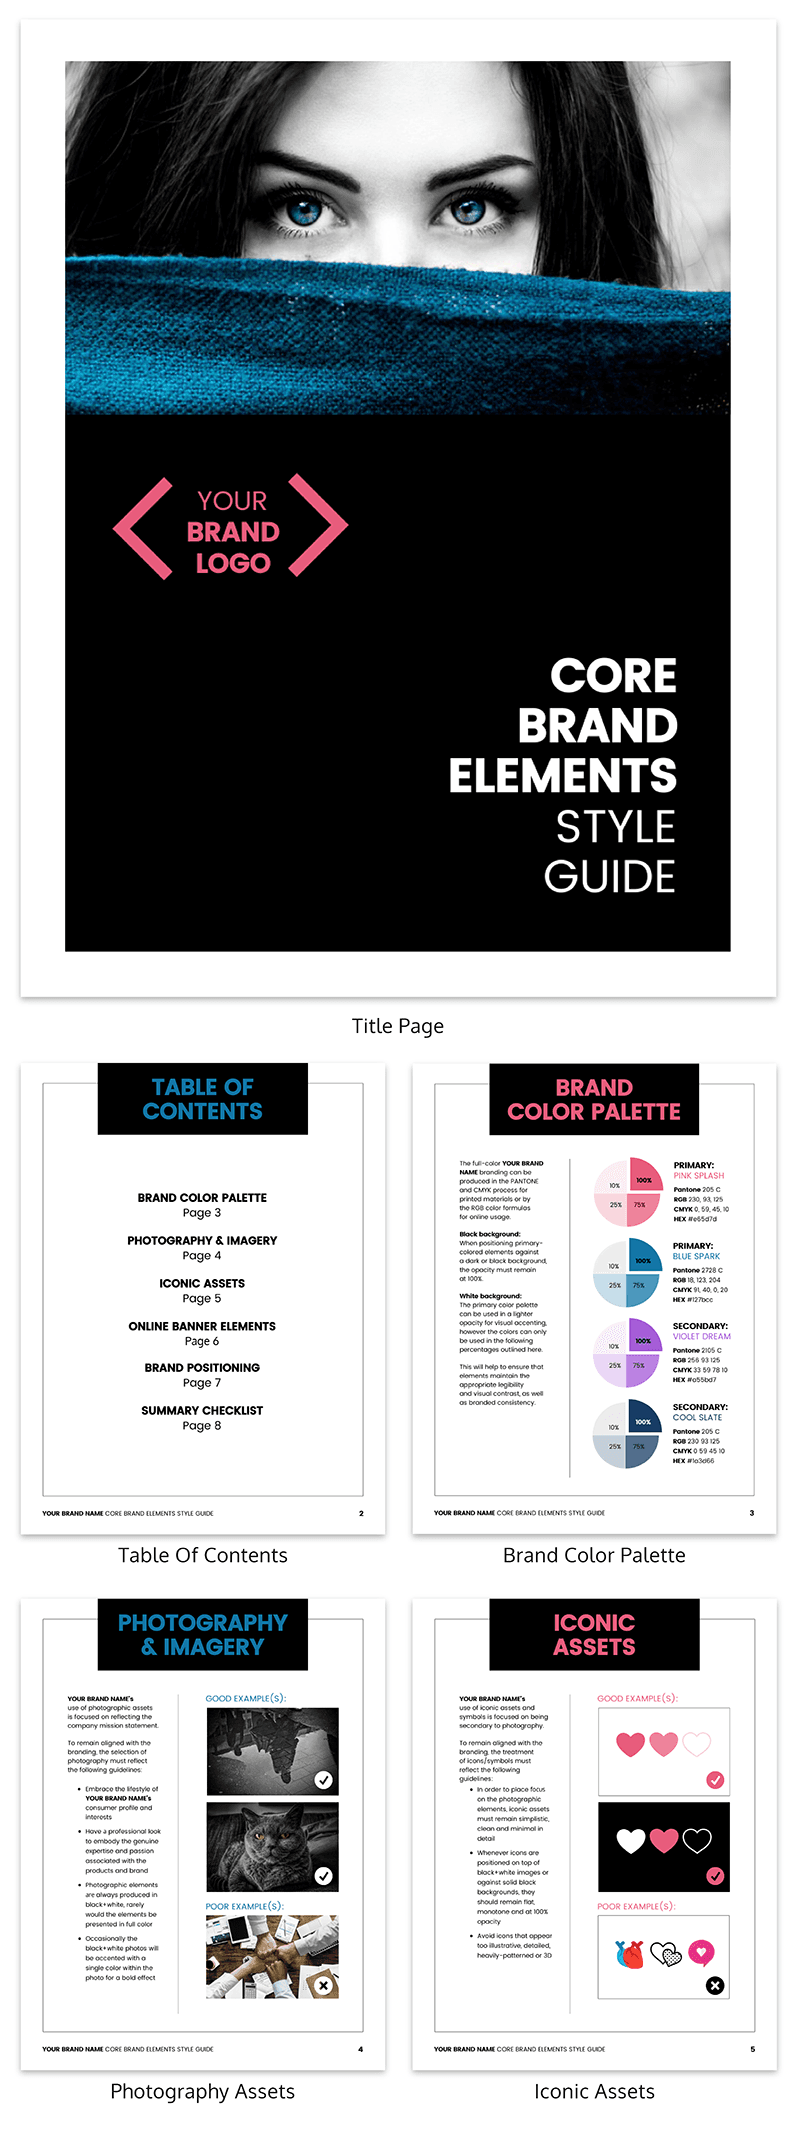 65+ Brand Guidelines Templates, Examples & Tips For Consistent